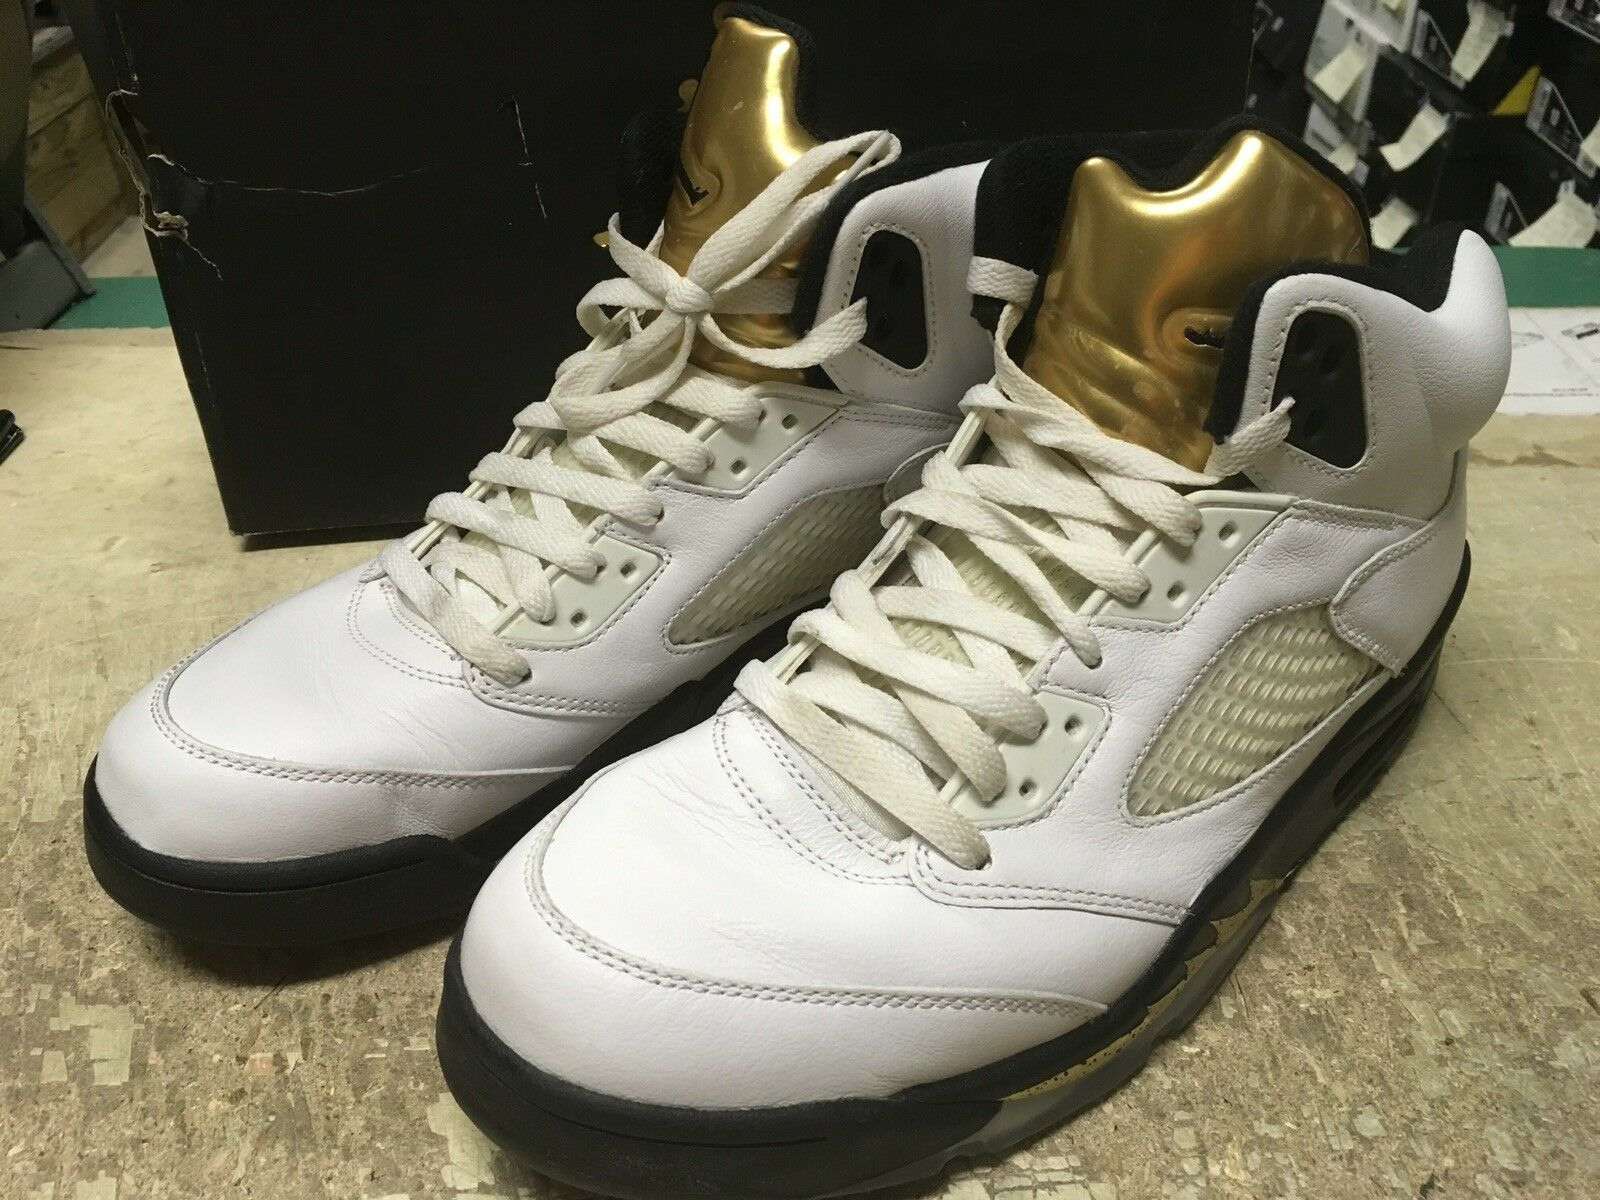 sports shoes a9f86 9f650 USED MENS NIKE AIR JORDAN V 5 RETRO WHITE WHITE WHITE GOLD COIN OLYMPIC  136027 133